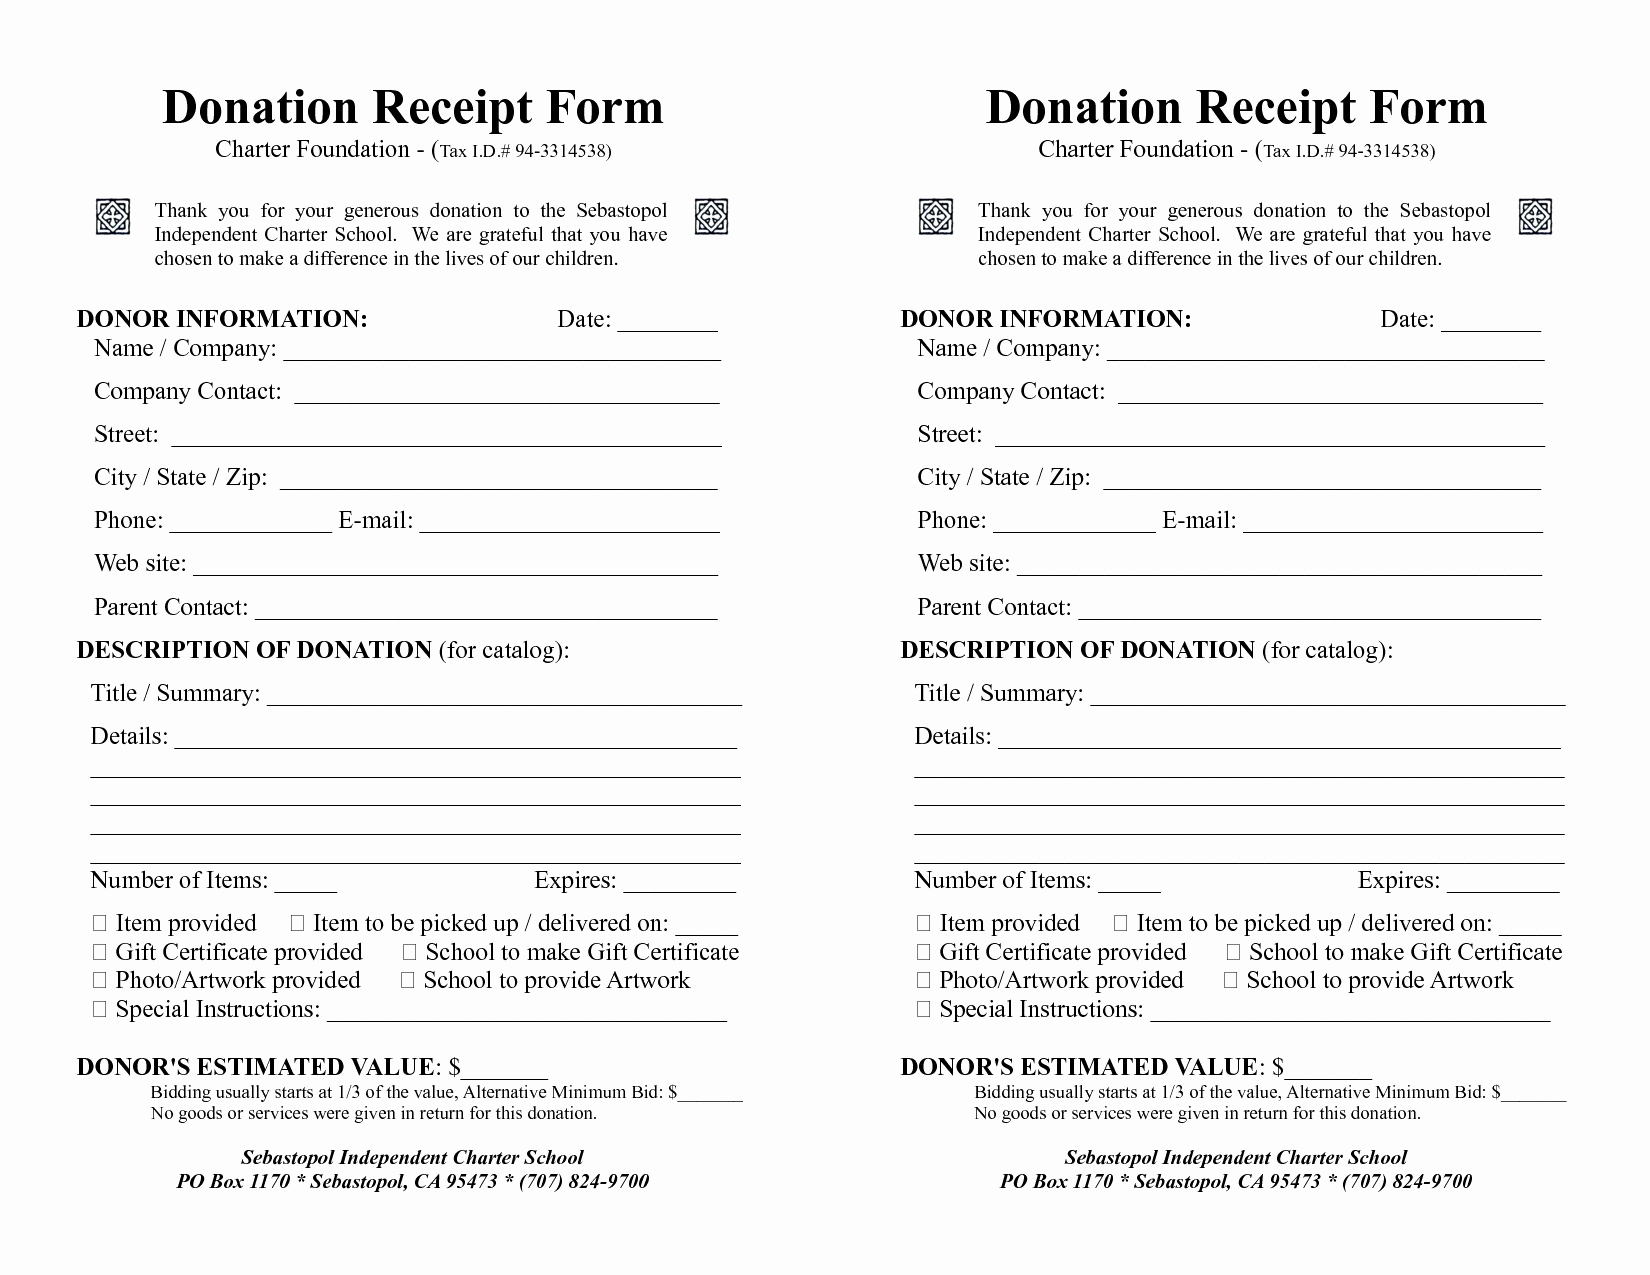 Donation Calculator Spreadsheet With Goodwill Donation Values Spreadsheet Elegant Salvation Army Form